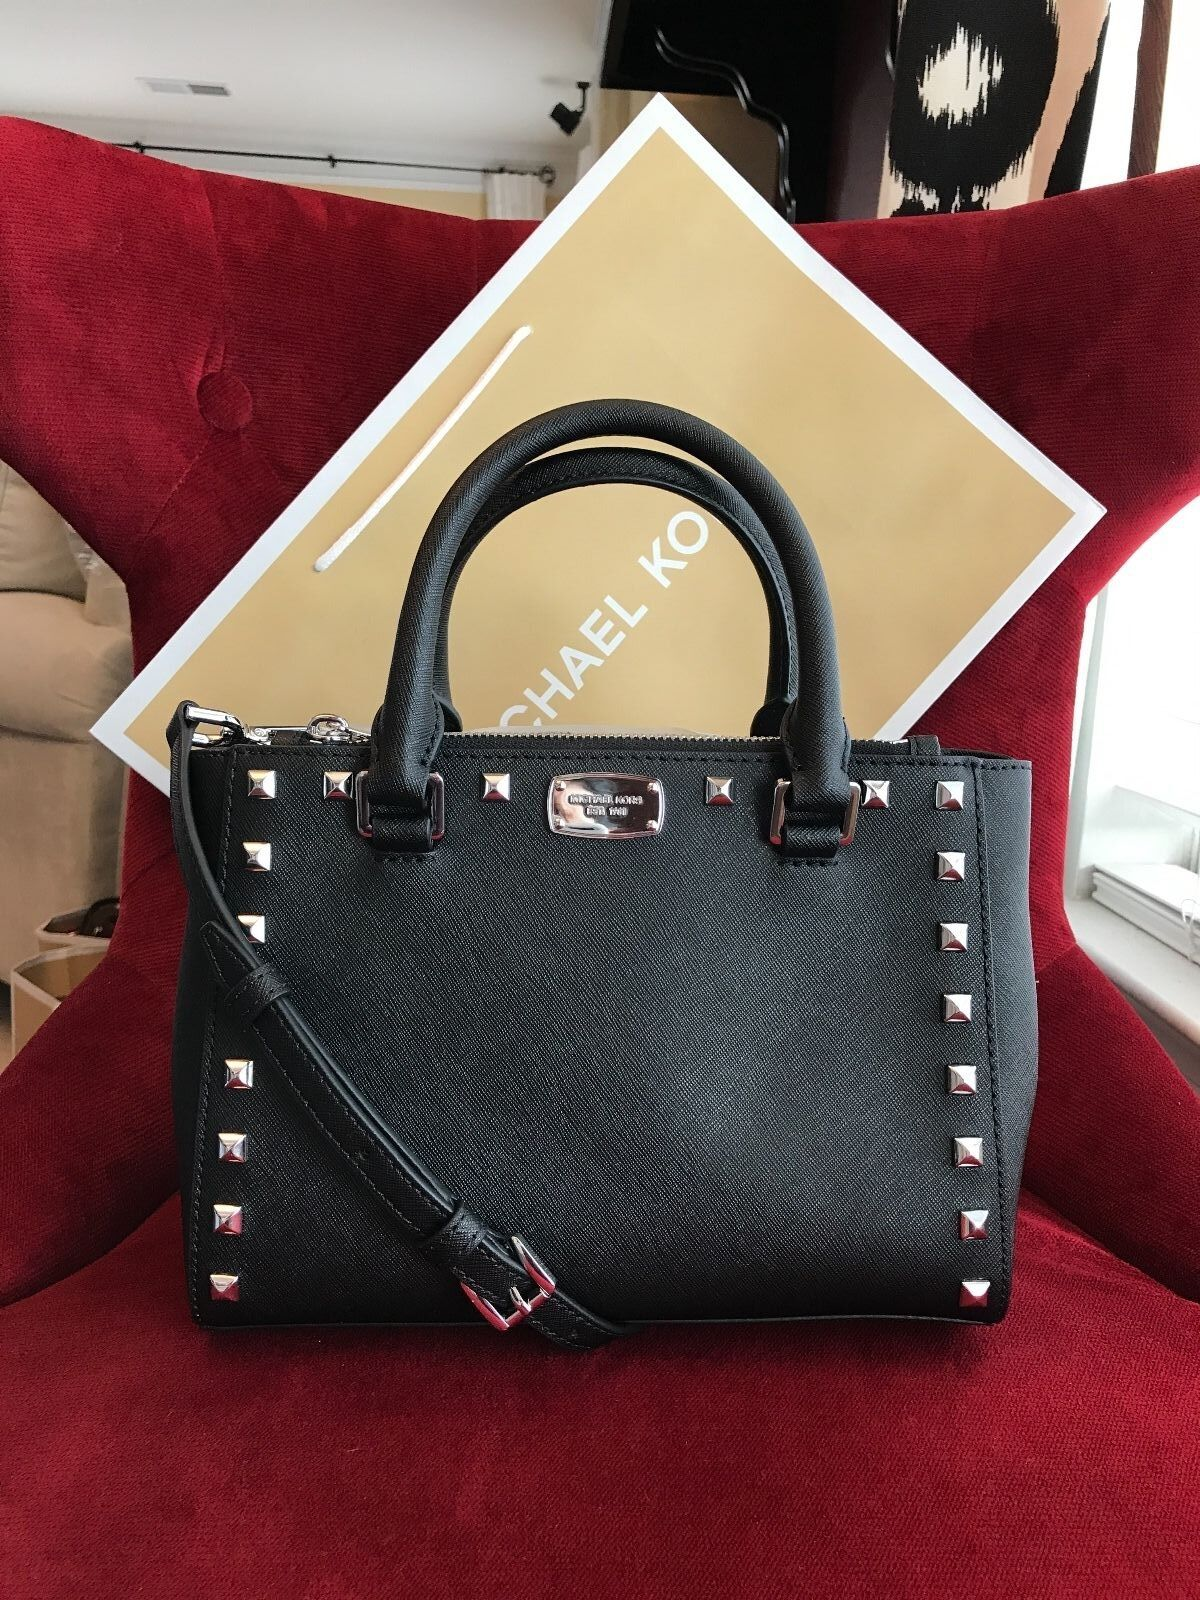 Michael Kors - NWT MICHAEL KORS SAFFIANO LEATHER KELLEN STUDDED XS SATCHEL BAG IN BLACK/SILVER